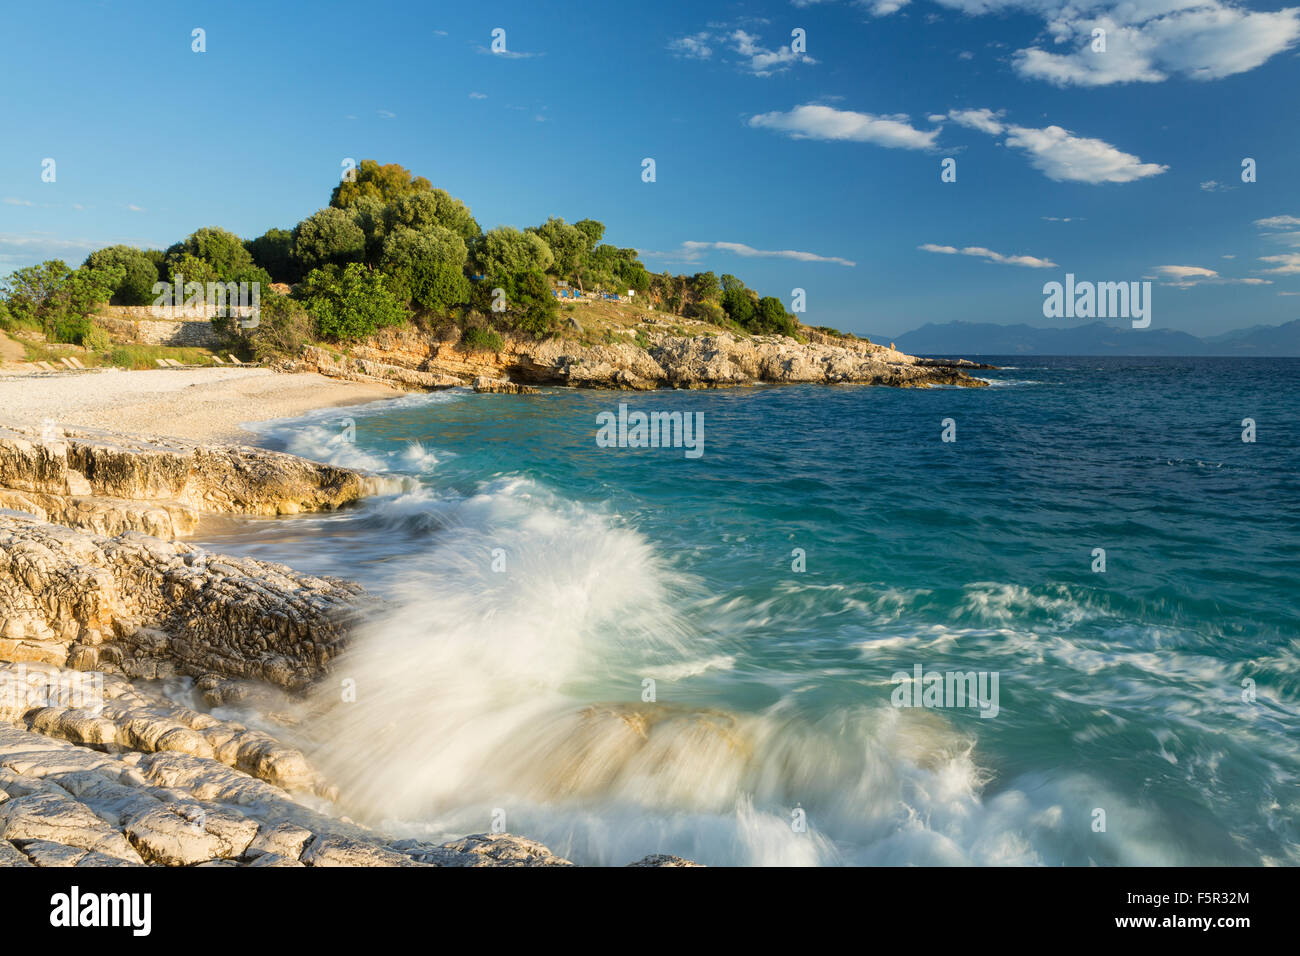 A wave crashes over the rocks on Batariaand Kanoni beach, Kassiopi, Corfu. The mountains of Albania can be seen Stock Photo